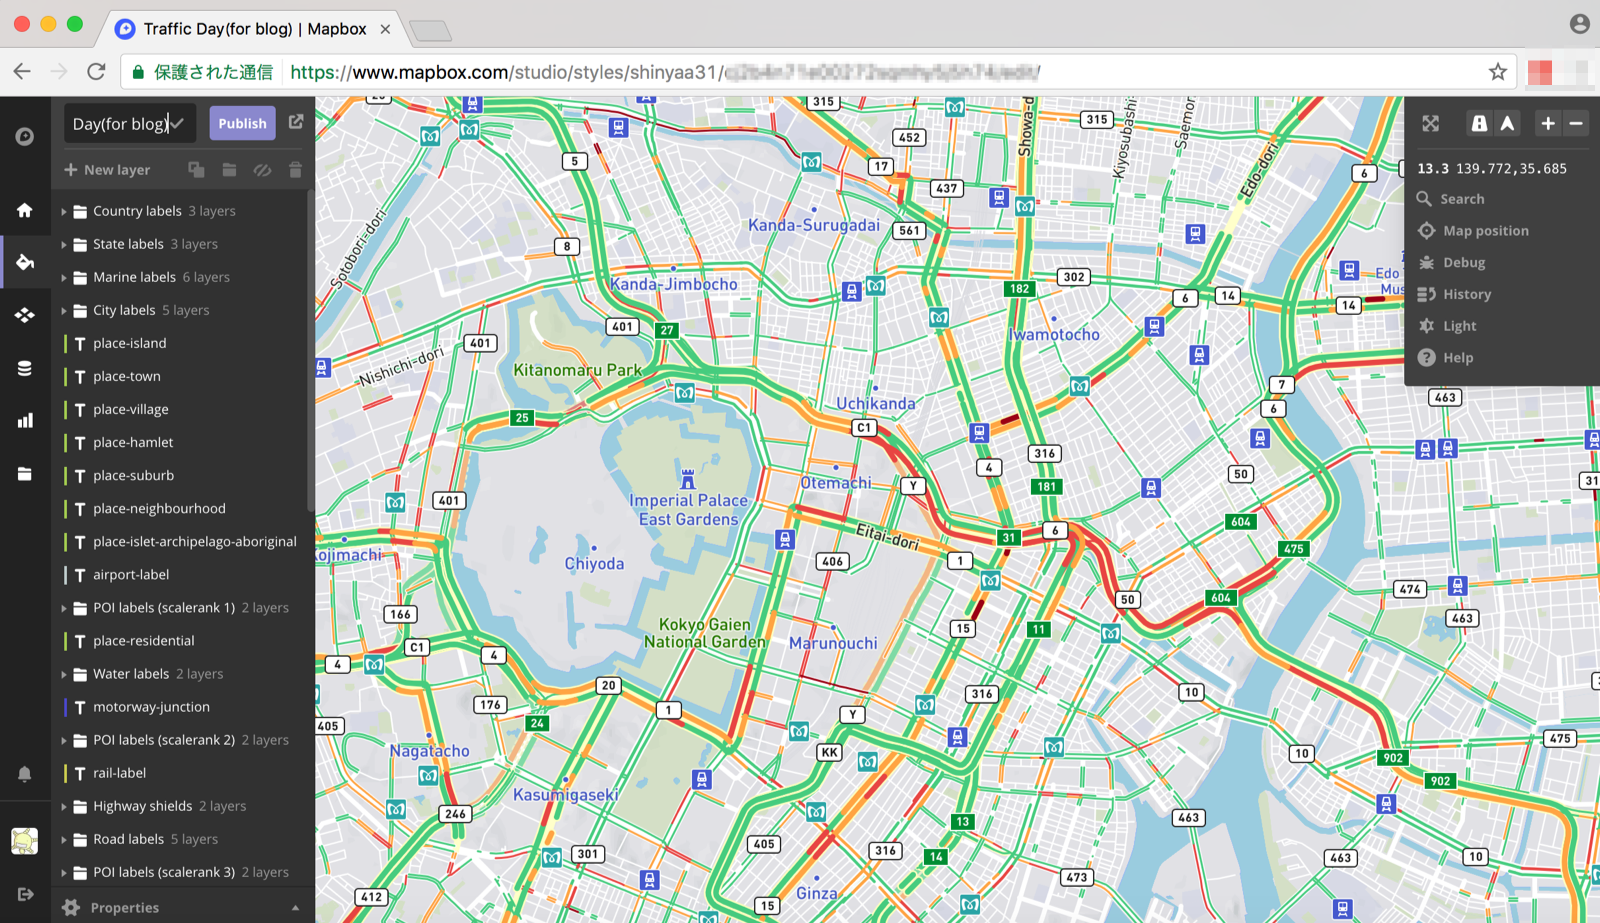 tableau-mapbox-traffic-map-is-available_03